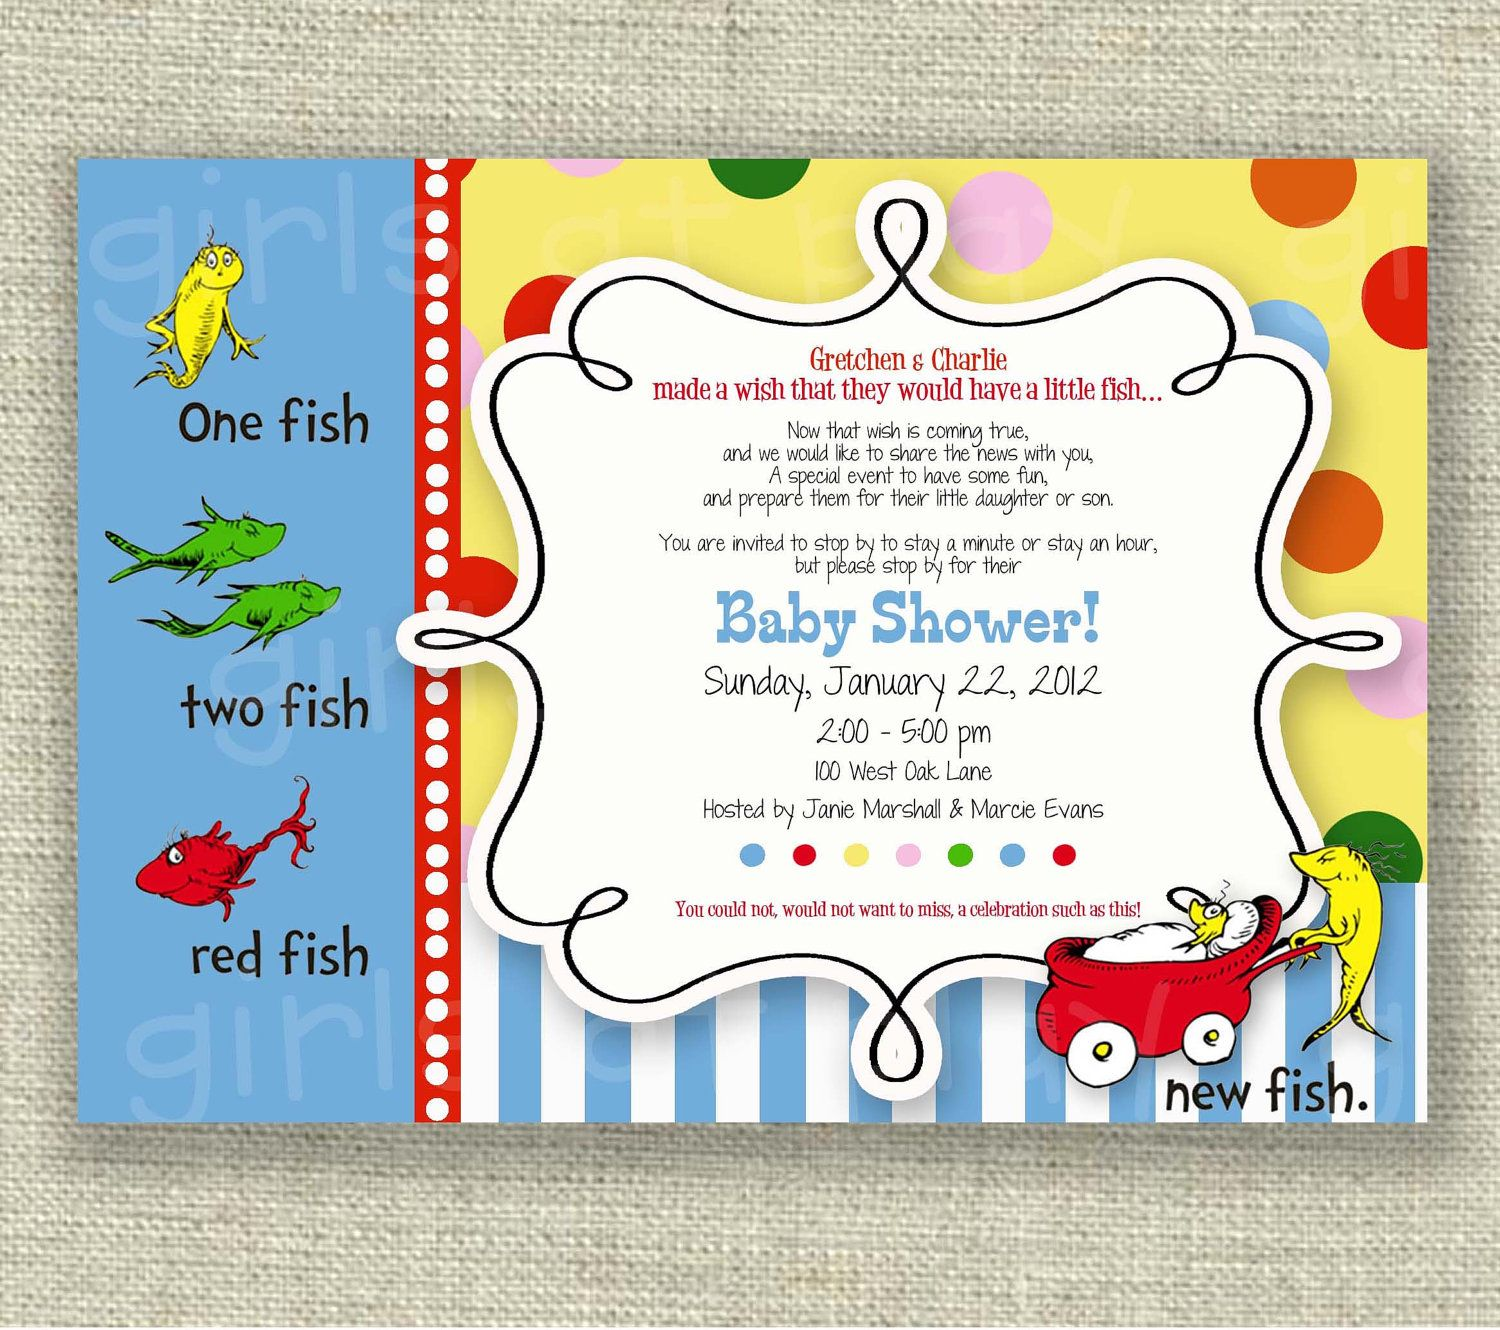 Dr Seuss Baby Shower Invitation One Fish Two Fish Boy Or Girl Printable